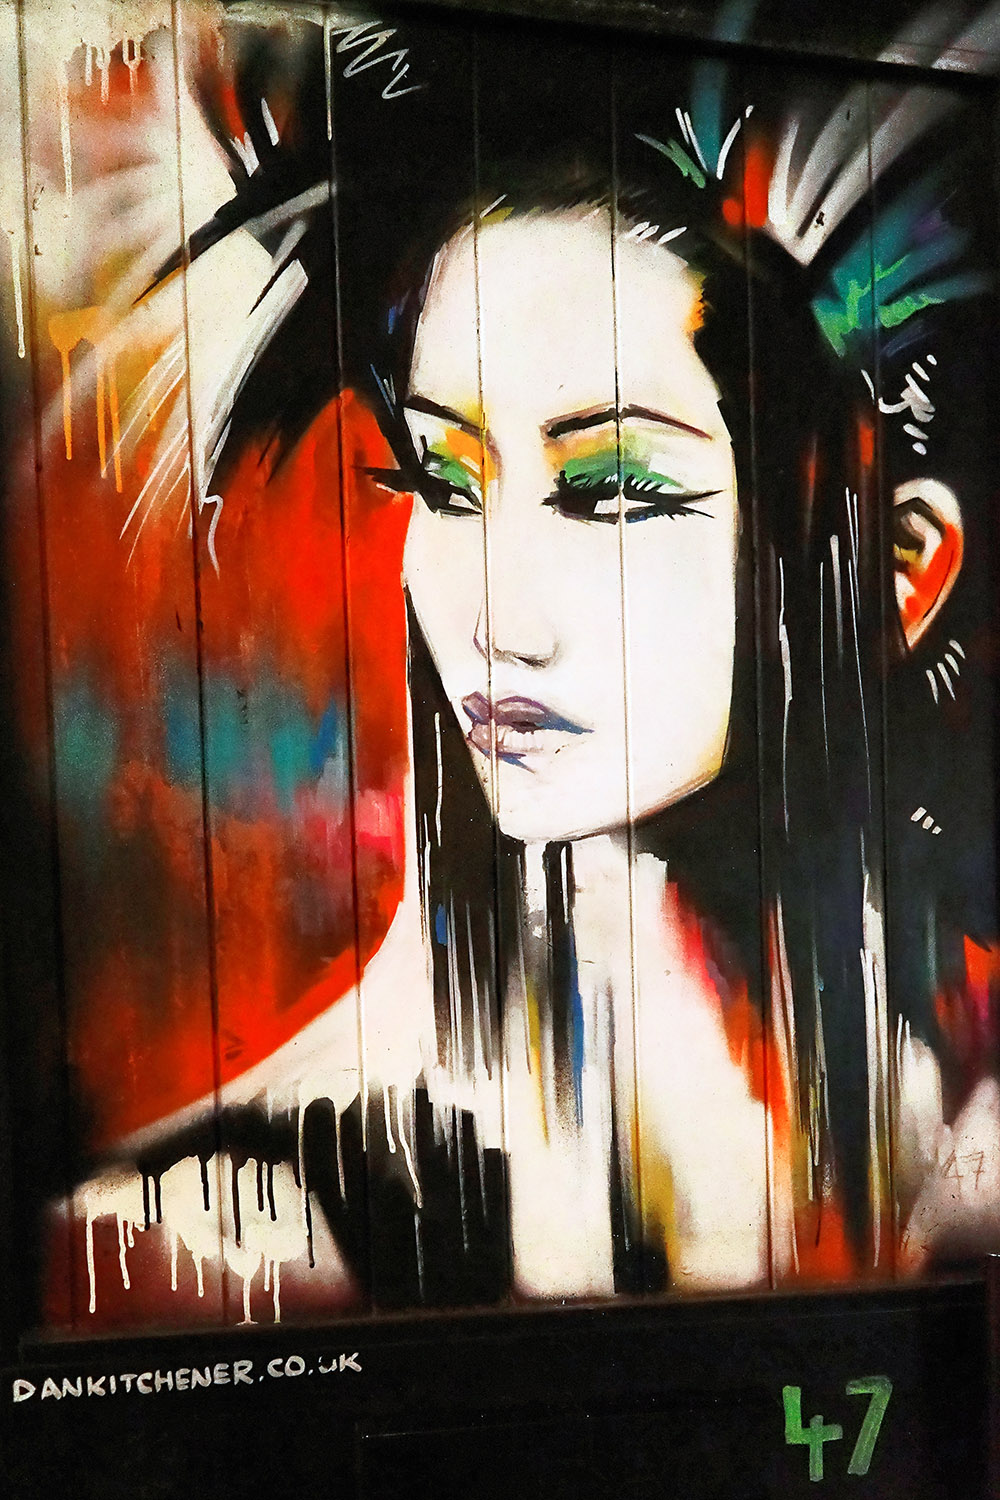 street art graffiti of a geisha by dan Kitchener brick lane east London england